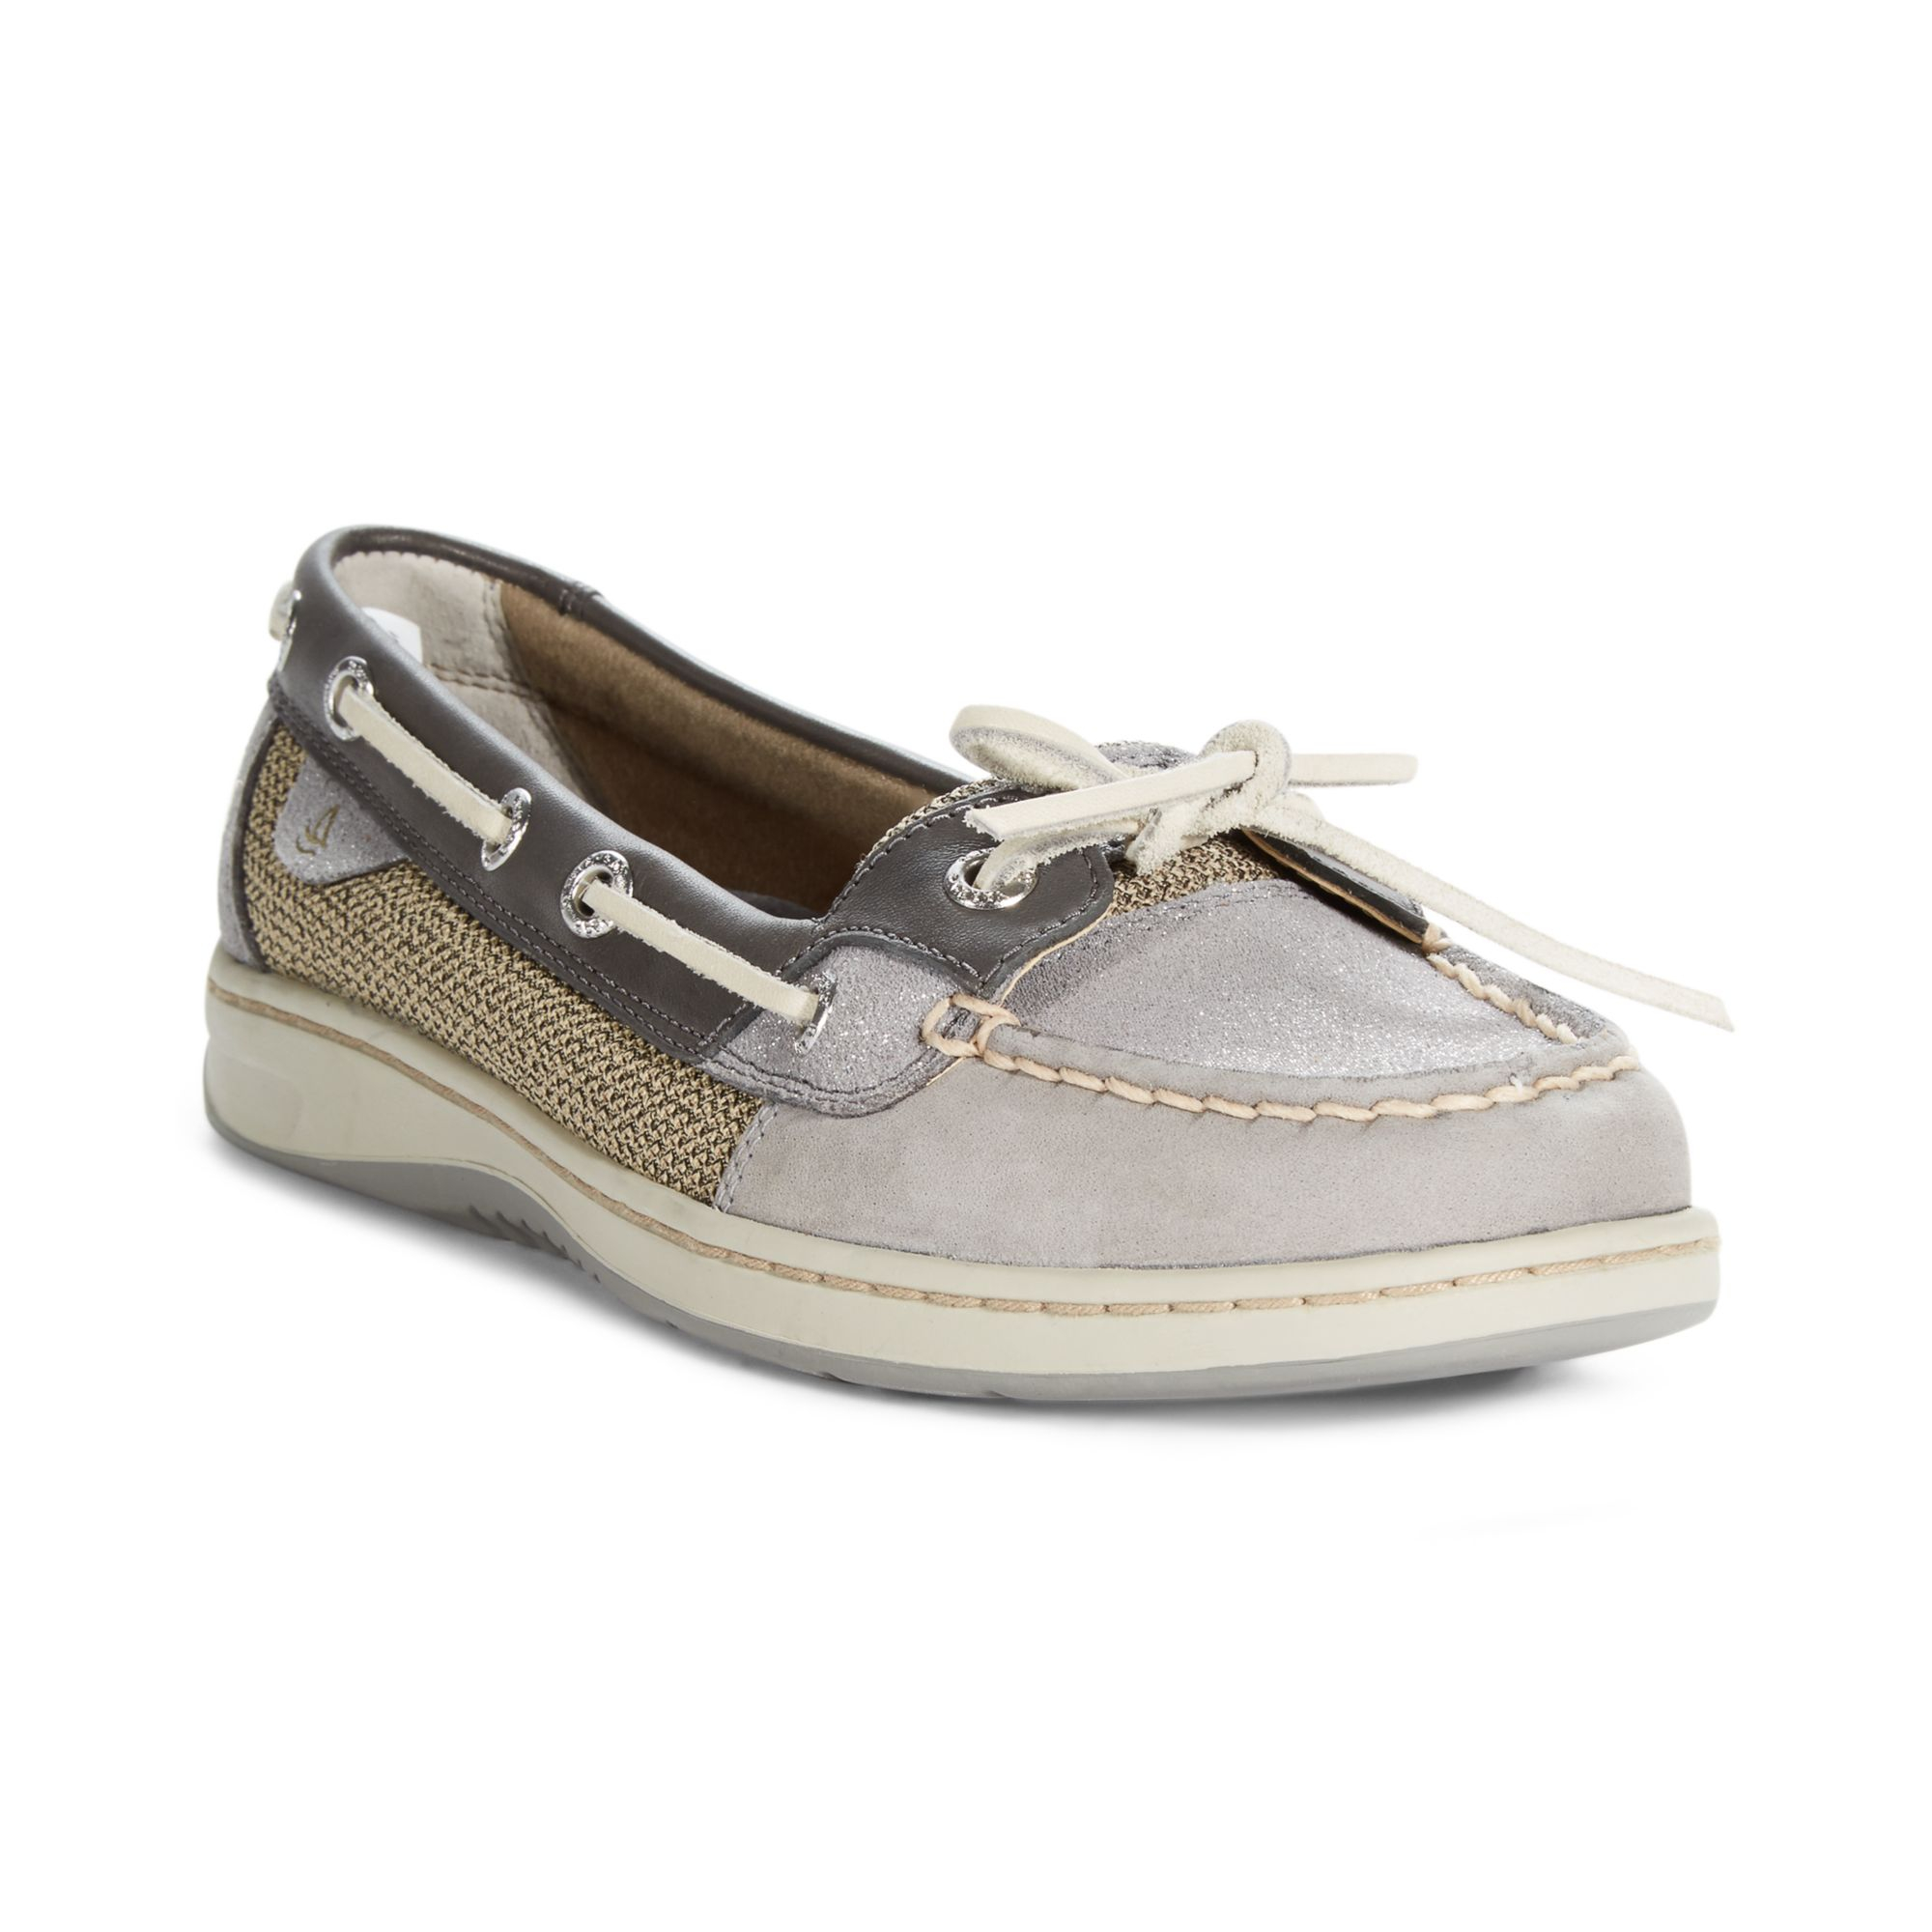 sperry top sider womens angelfish boat shoes in gray